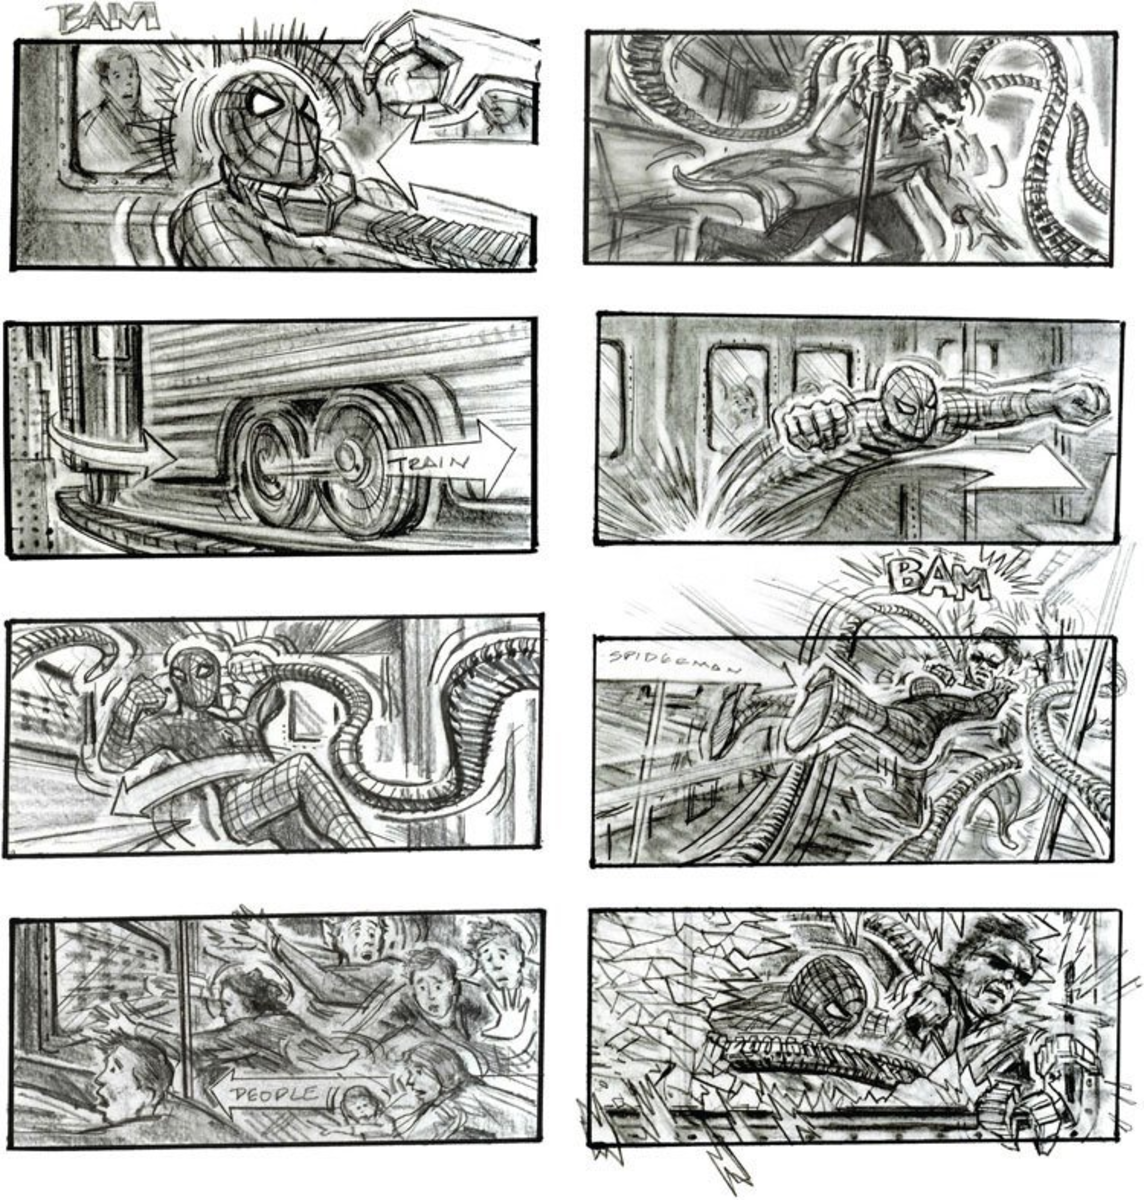 Storyboard from Spider-man 2 in 2004